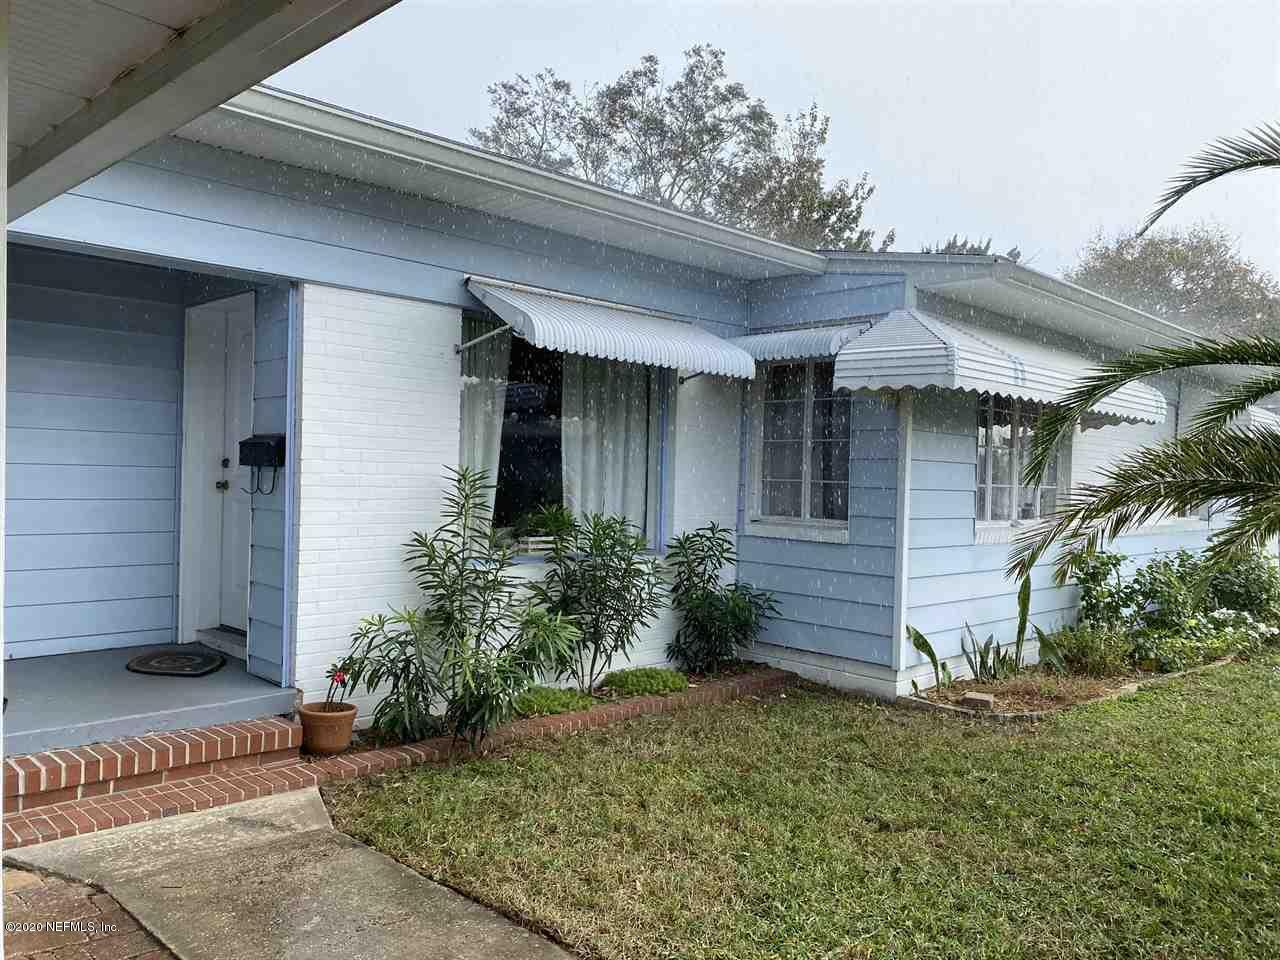 490 ARRICOLA, ST AUGUSTINE, FLORIDA 32080, 3 Bedrooms Bedrooms, ,2 BathroomsBathrooms,Residential,For sale,ARRICOLA,1081993